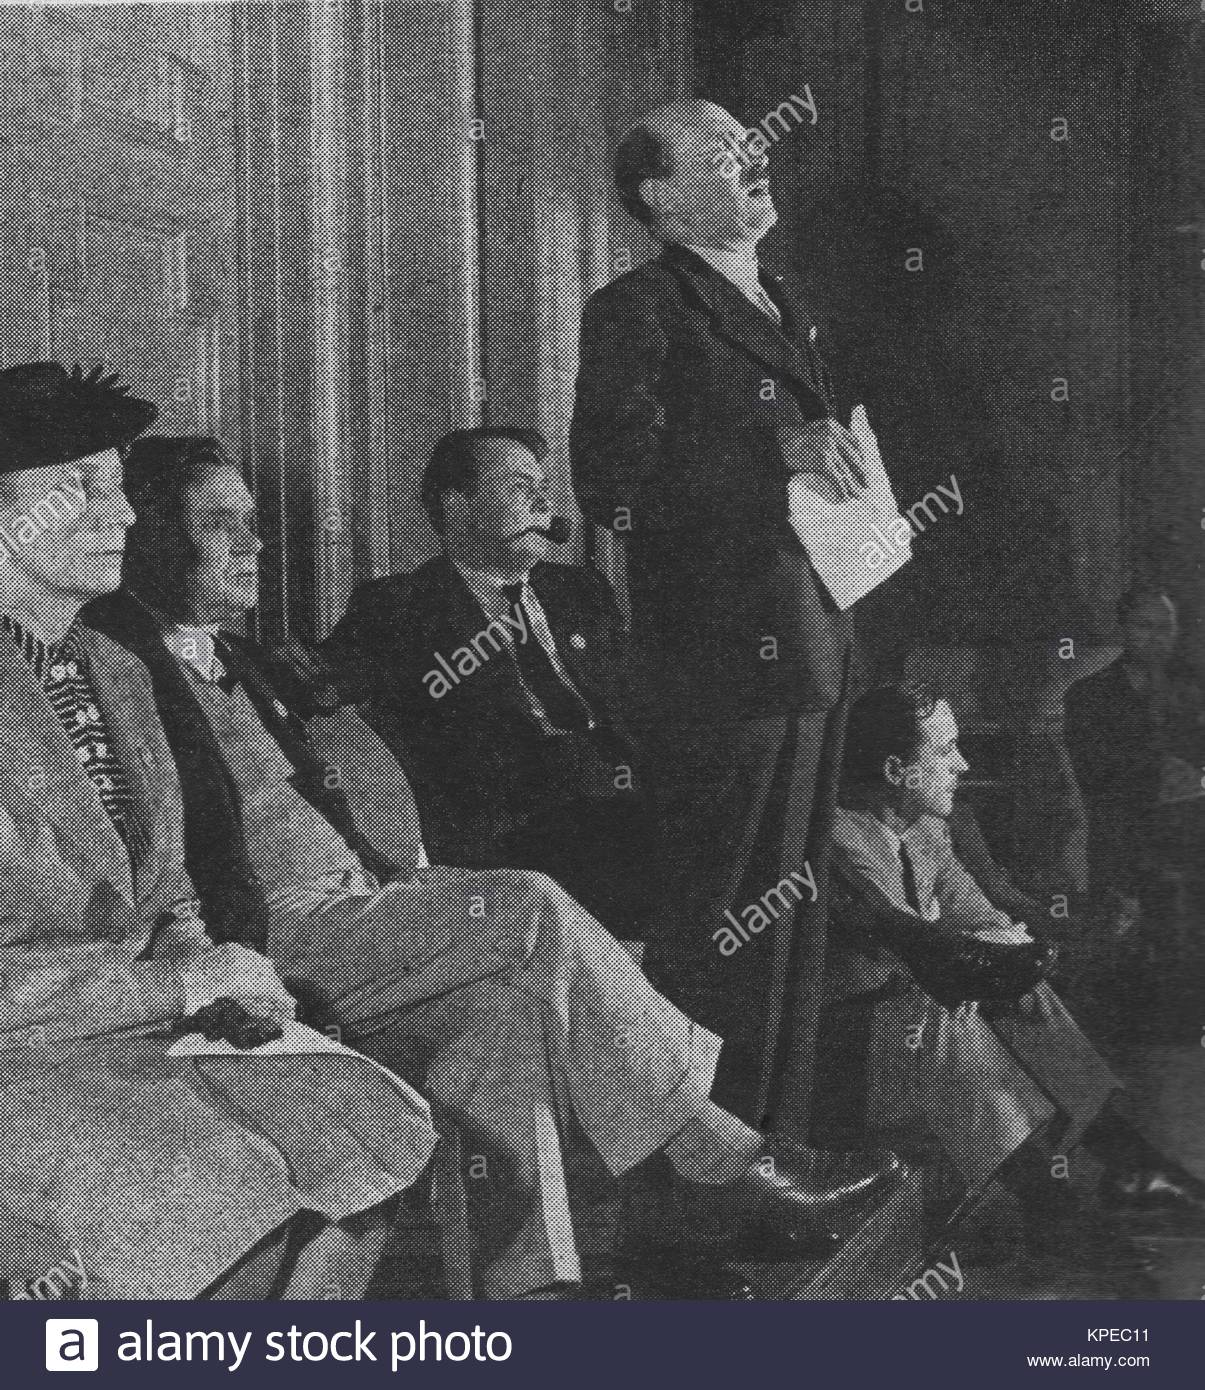 Clement Attlee (1883 – 1967) a British statesman of the Labour Party in a 1946 photo. He served as Prime Minister - Stock Image